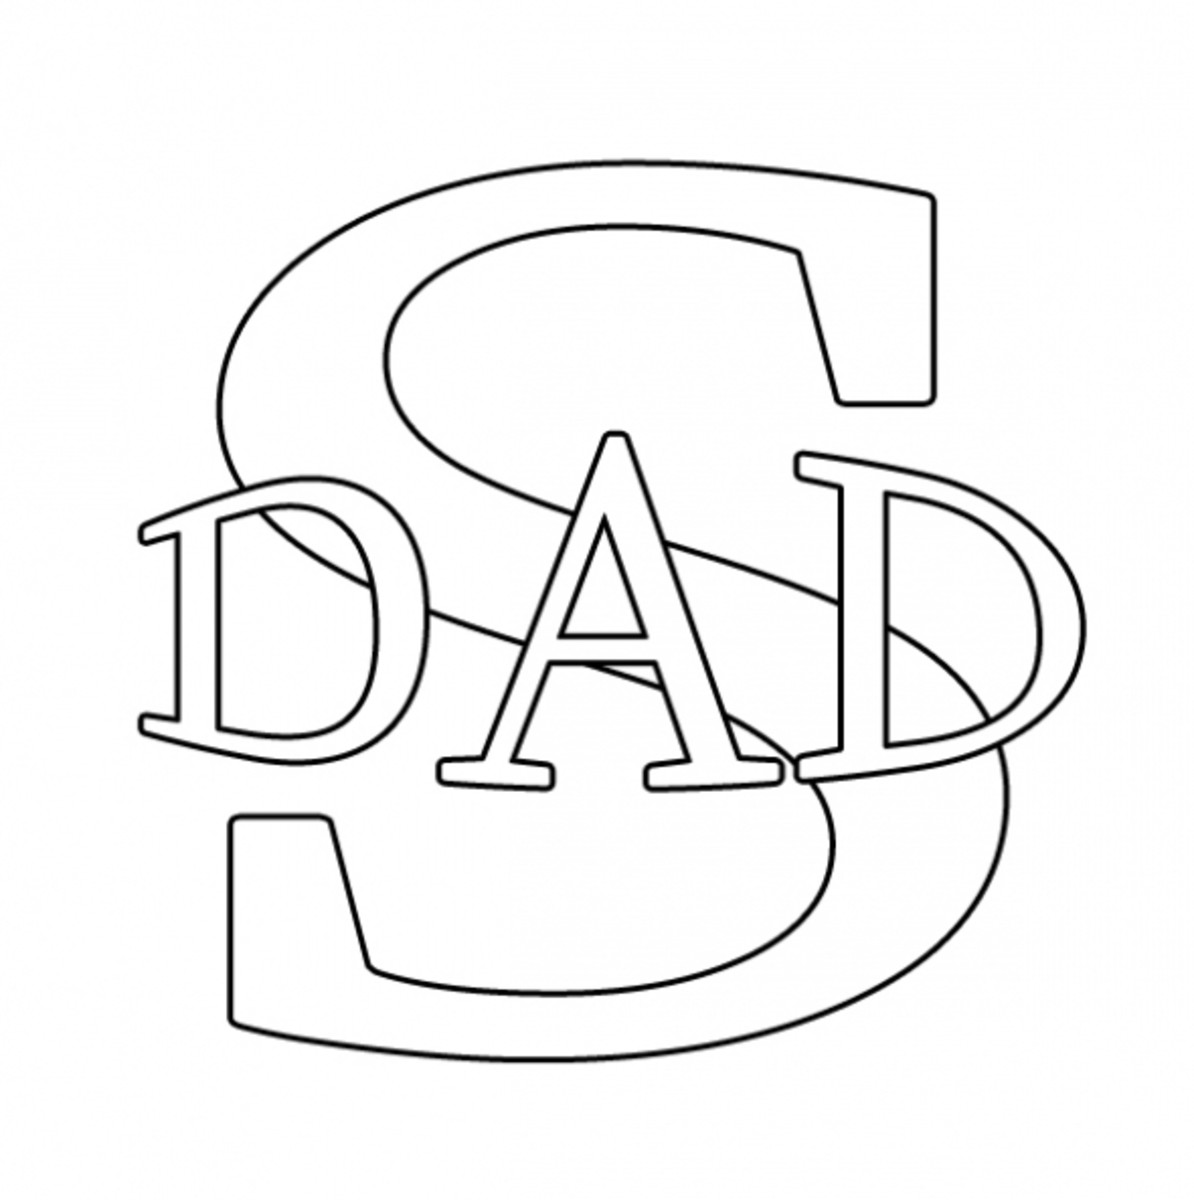 super dads coloring pages - photo#14